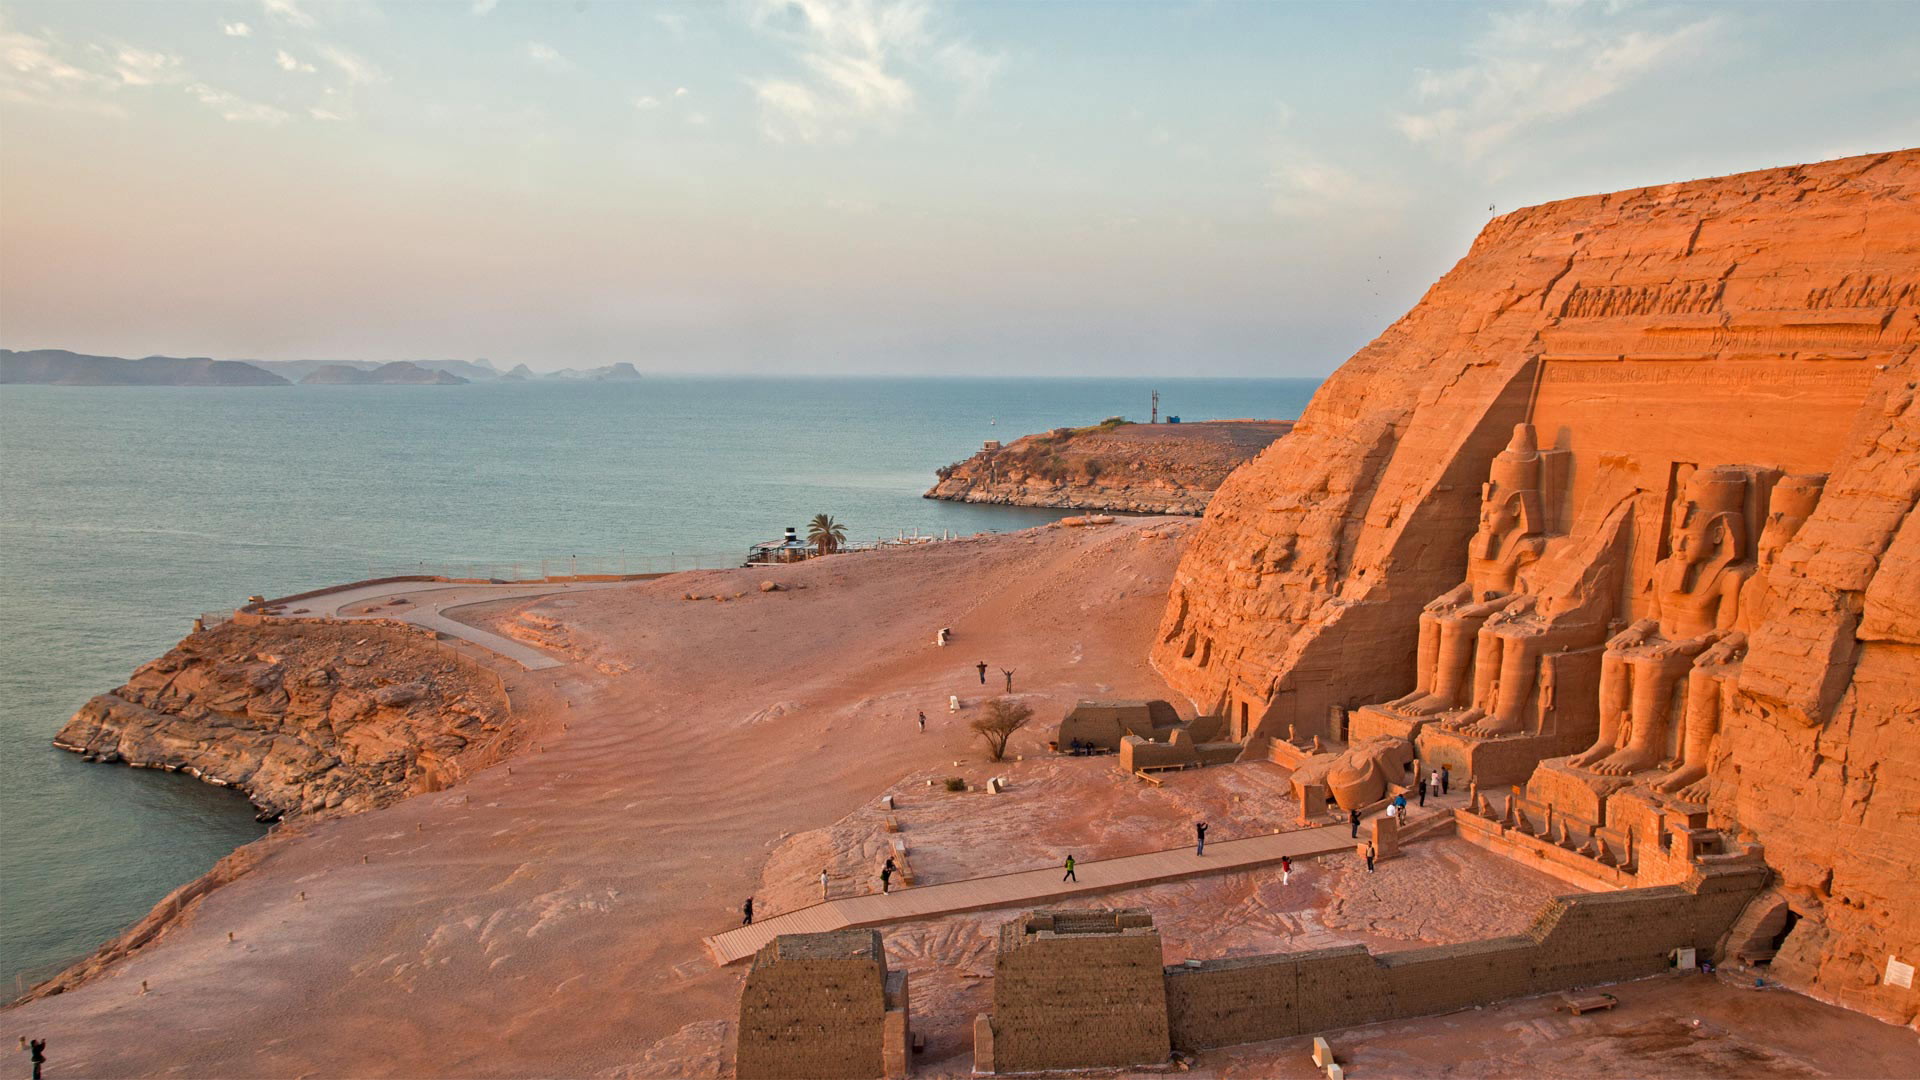 The Abu Simbel temples on the west shore of Lake Nasser, Egypt (© George Steinmetz/Getty Images)